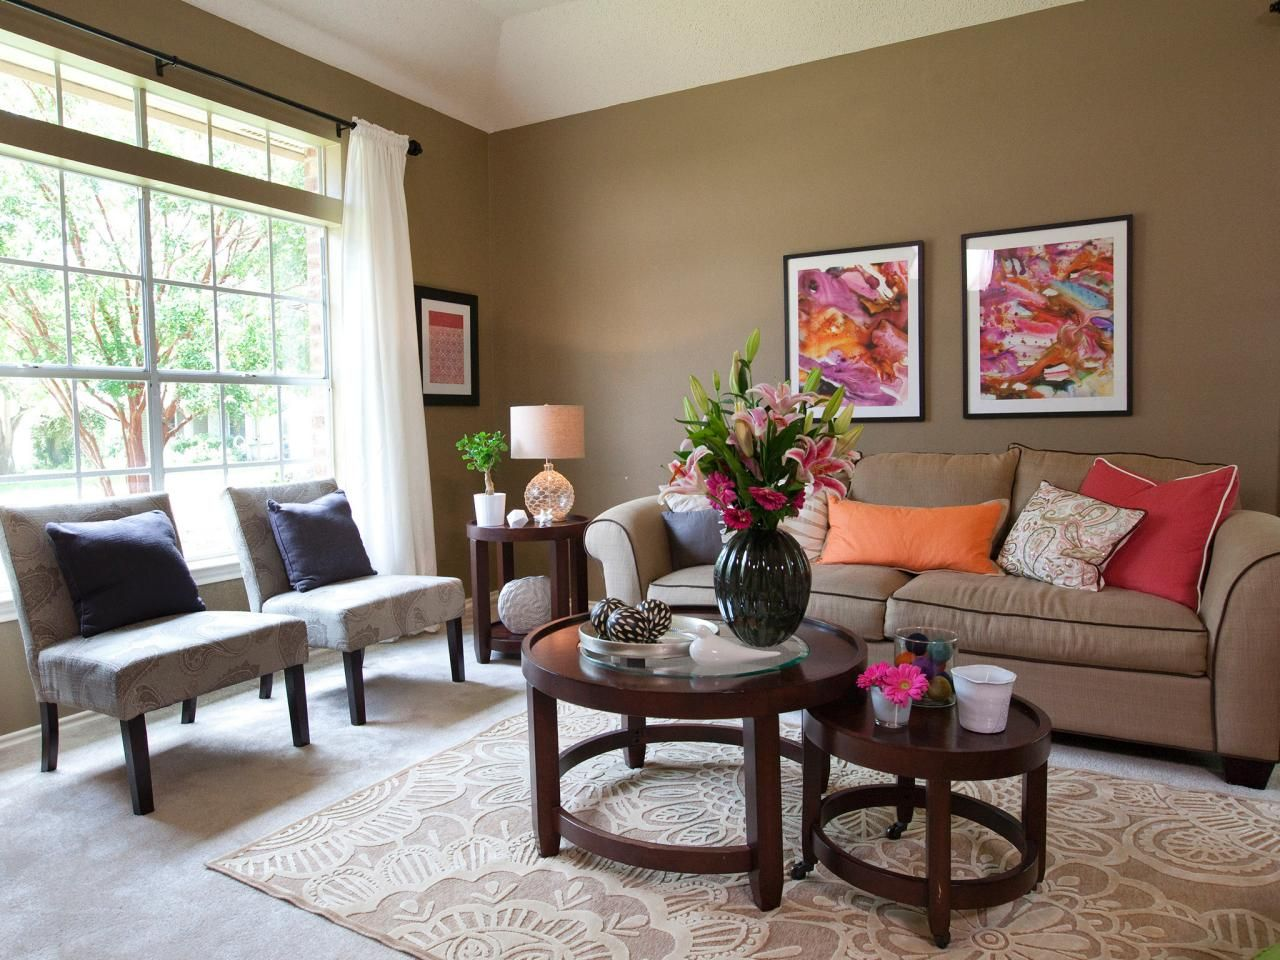 This Lively Living Room Features An All Over Earthy Taupe Color With Pops Of